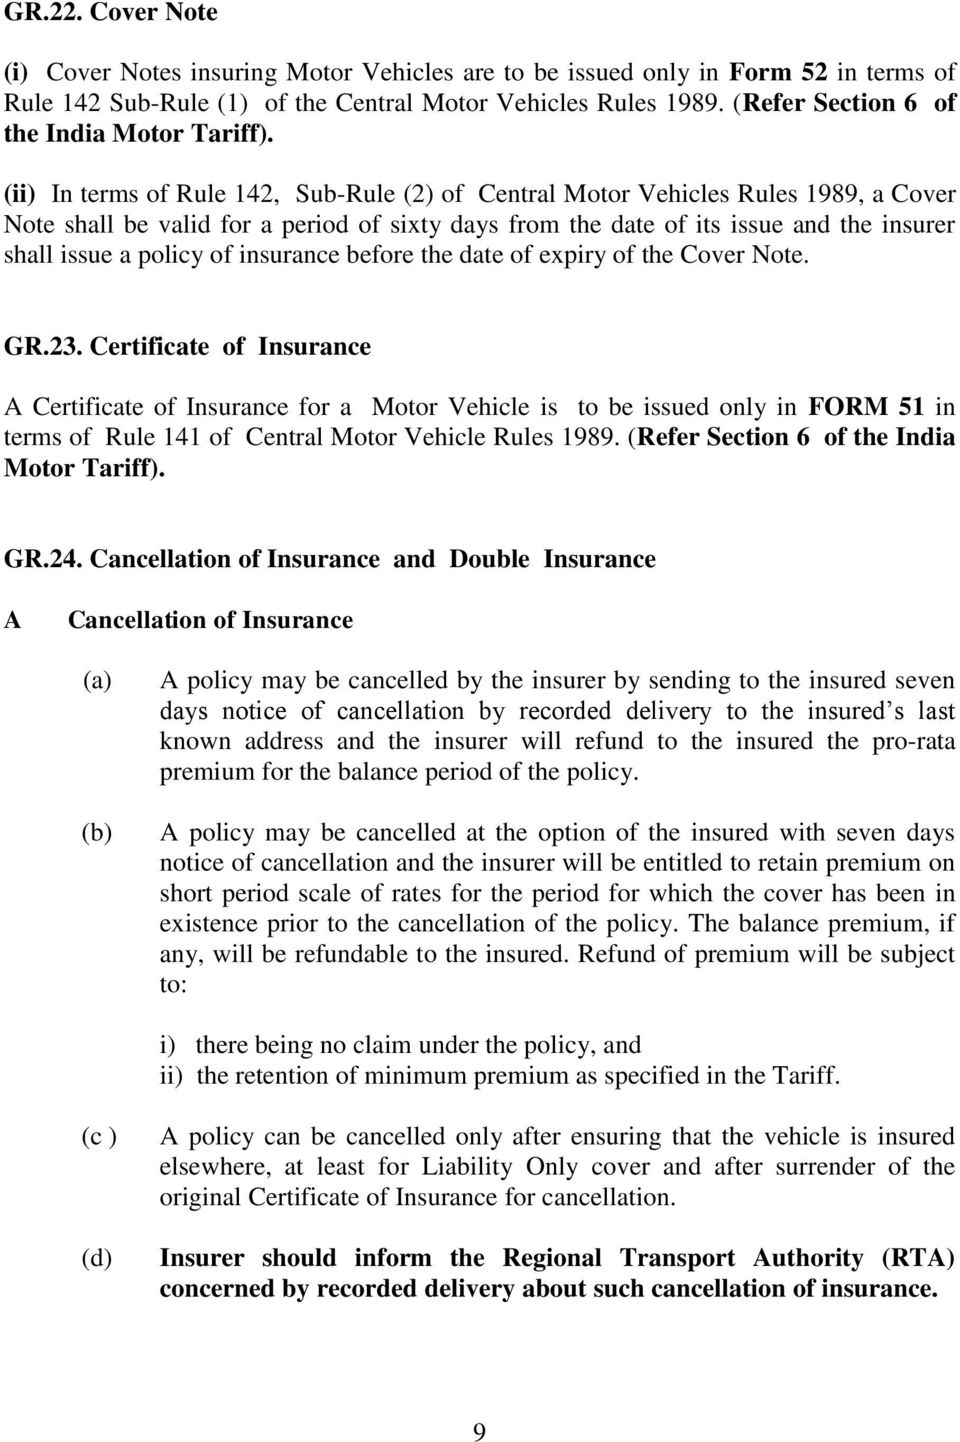 (ii) In terms of Rule 142, Sub-Rule (2) of Central Motor Vehicles Rules 1989, a Cover Note shall be valid for a period of sixty days from the date of its issue and the insurer shall issue a policy of